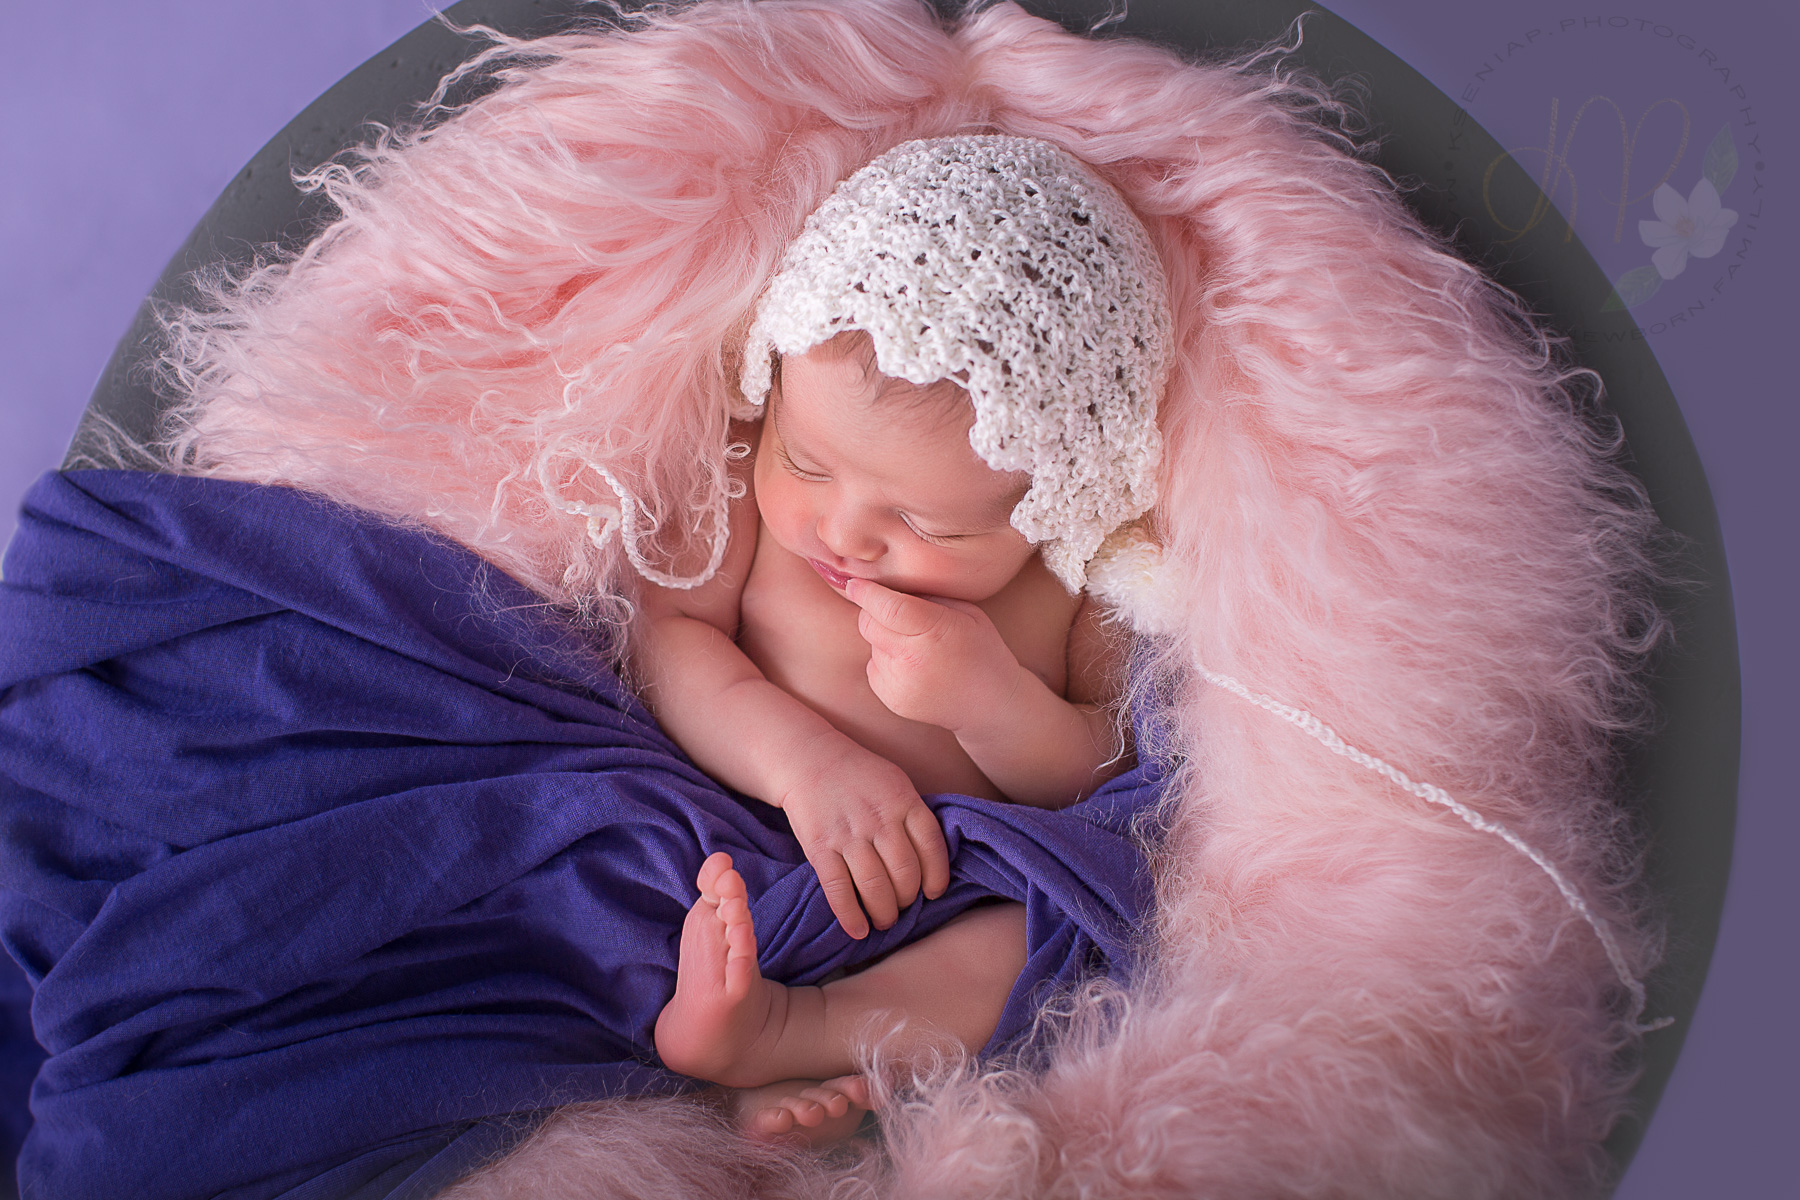 Image of newborn baby wearing a white hat and wrapped in purple wrap asleep